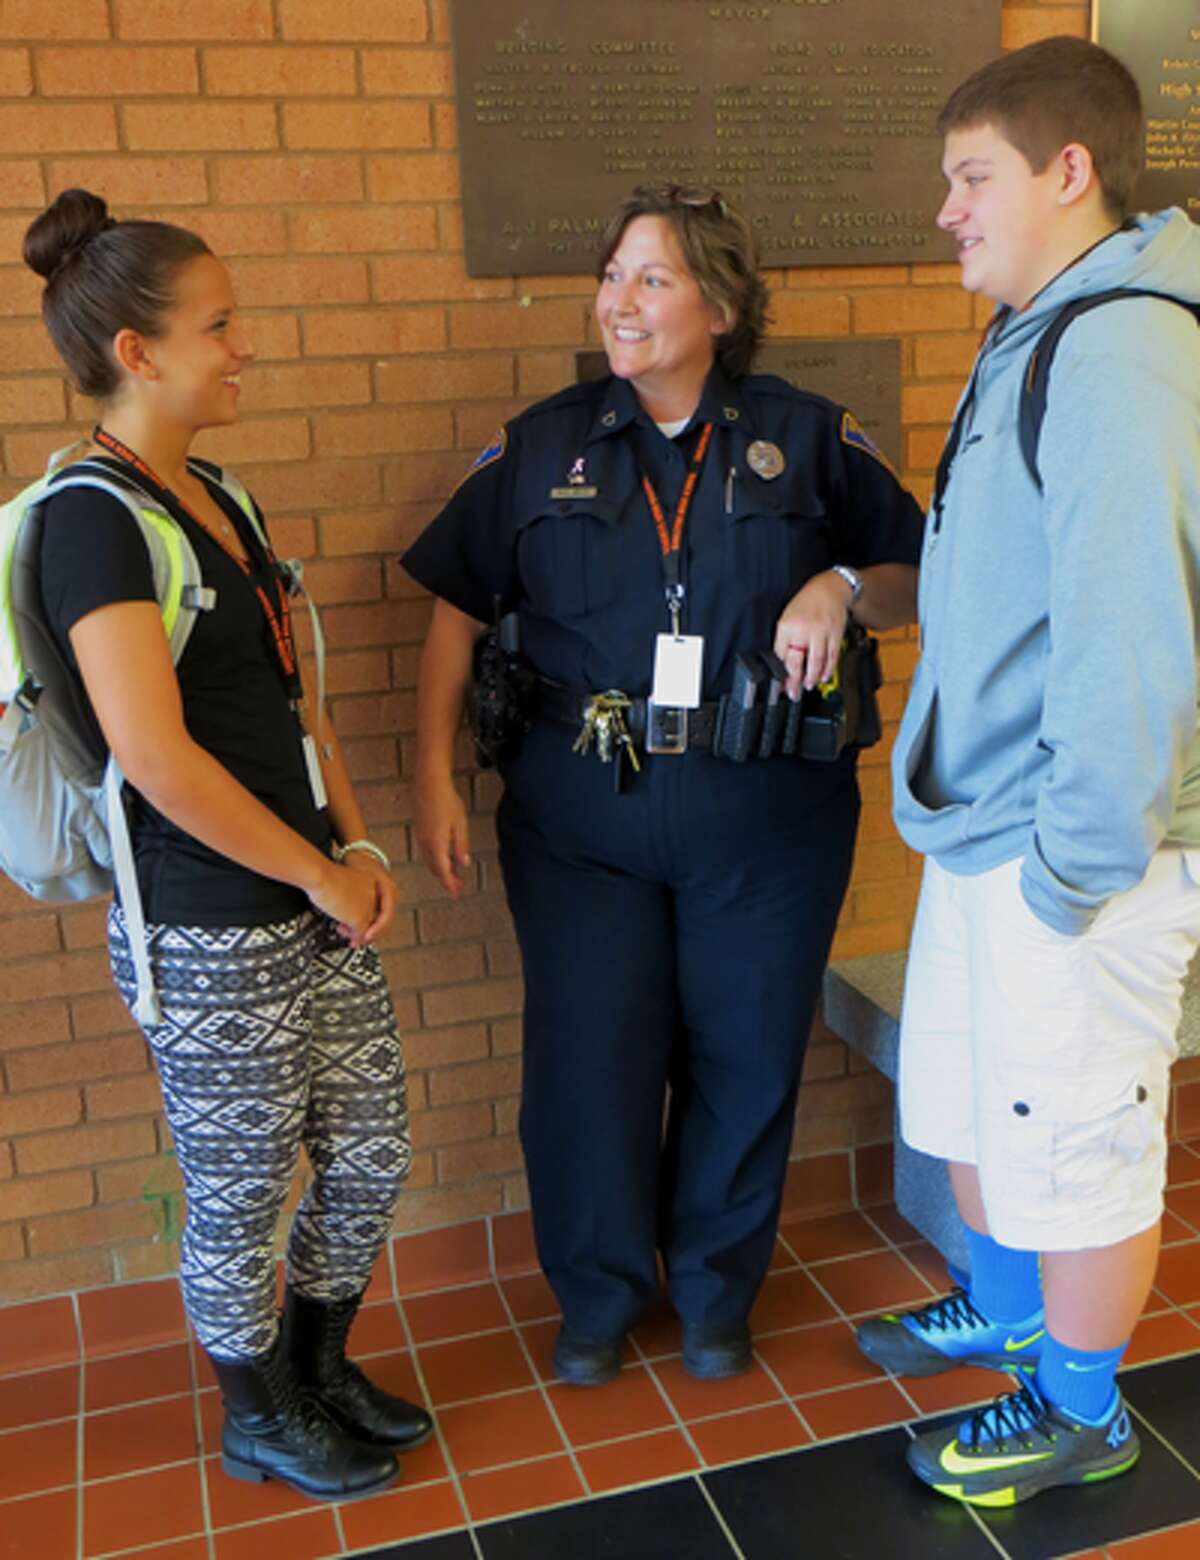 Students Carly Shomski, a senior, and Hunter Garrett, a junior, chat with School Resource Officer Mary Beth White at Shelton High School.